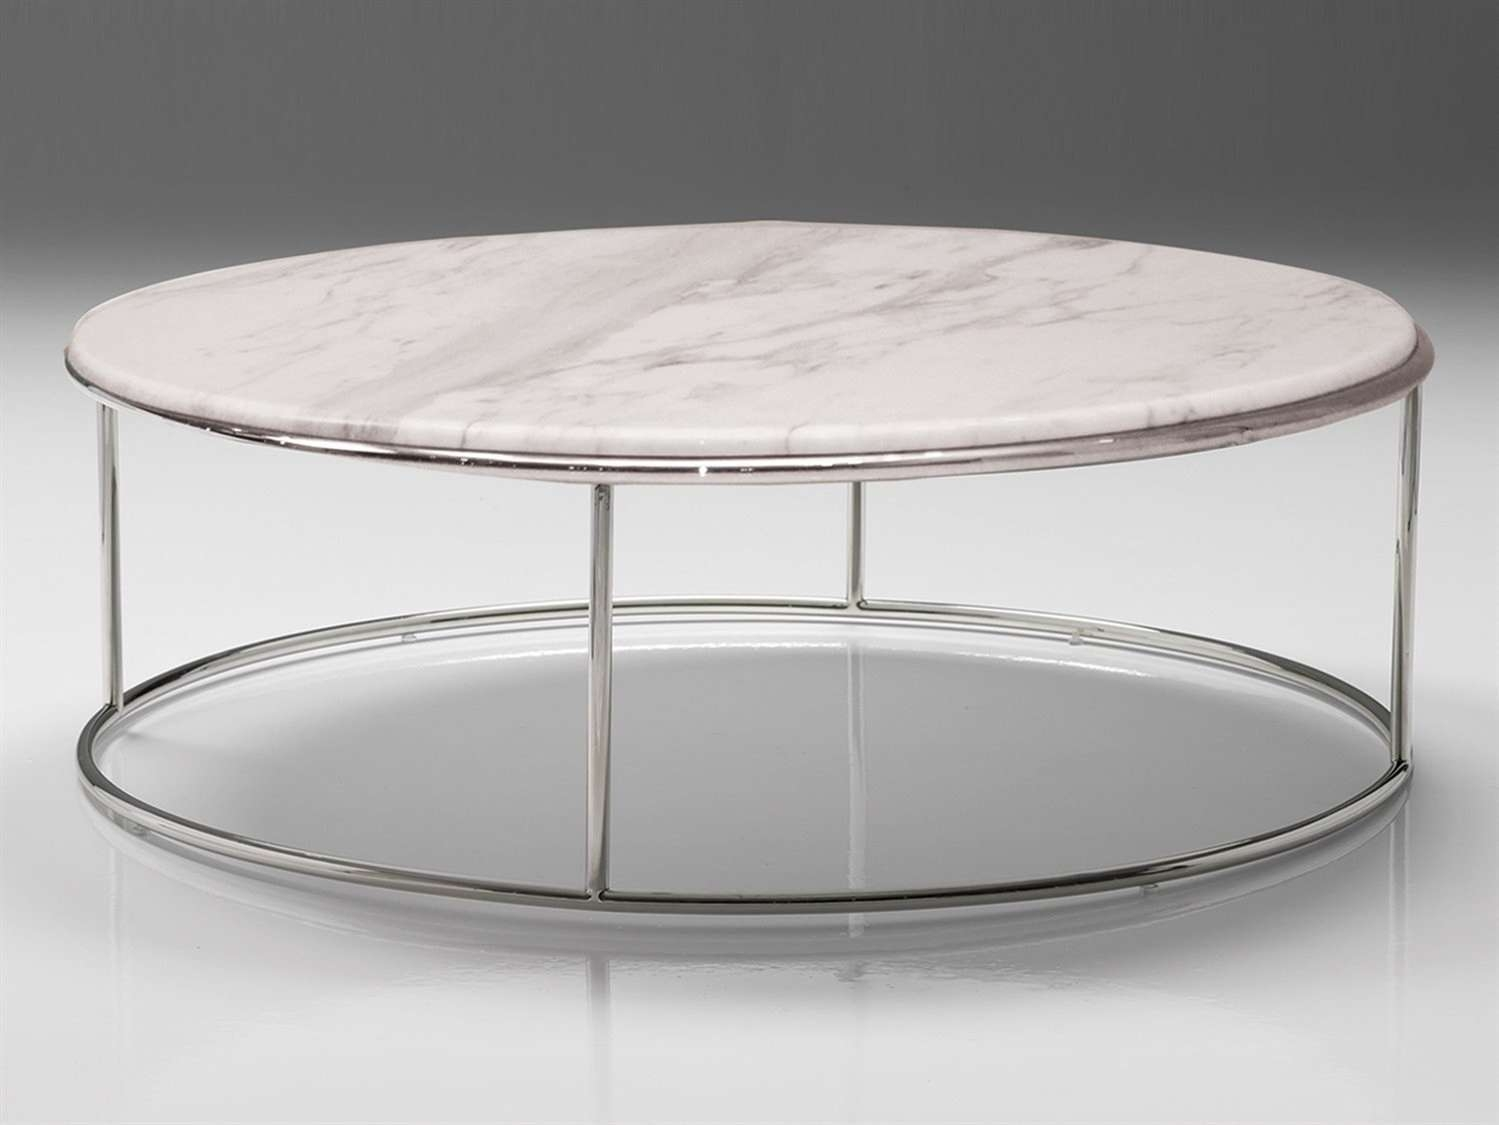 Round Marble Coffee Table Pertaining To 2018 White Marble Coffee Tables (View 16 of 20)